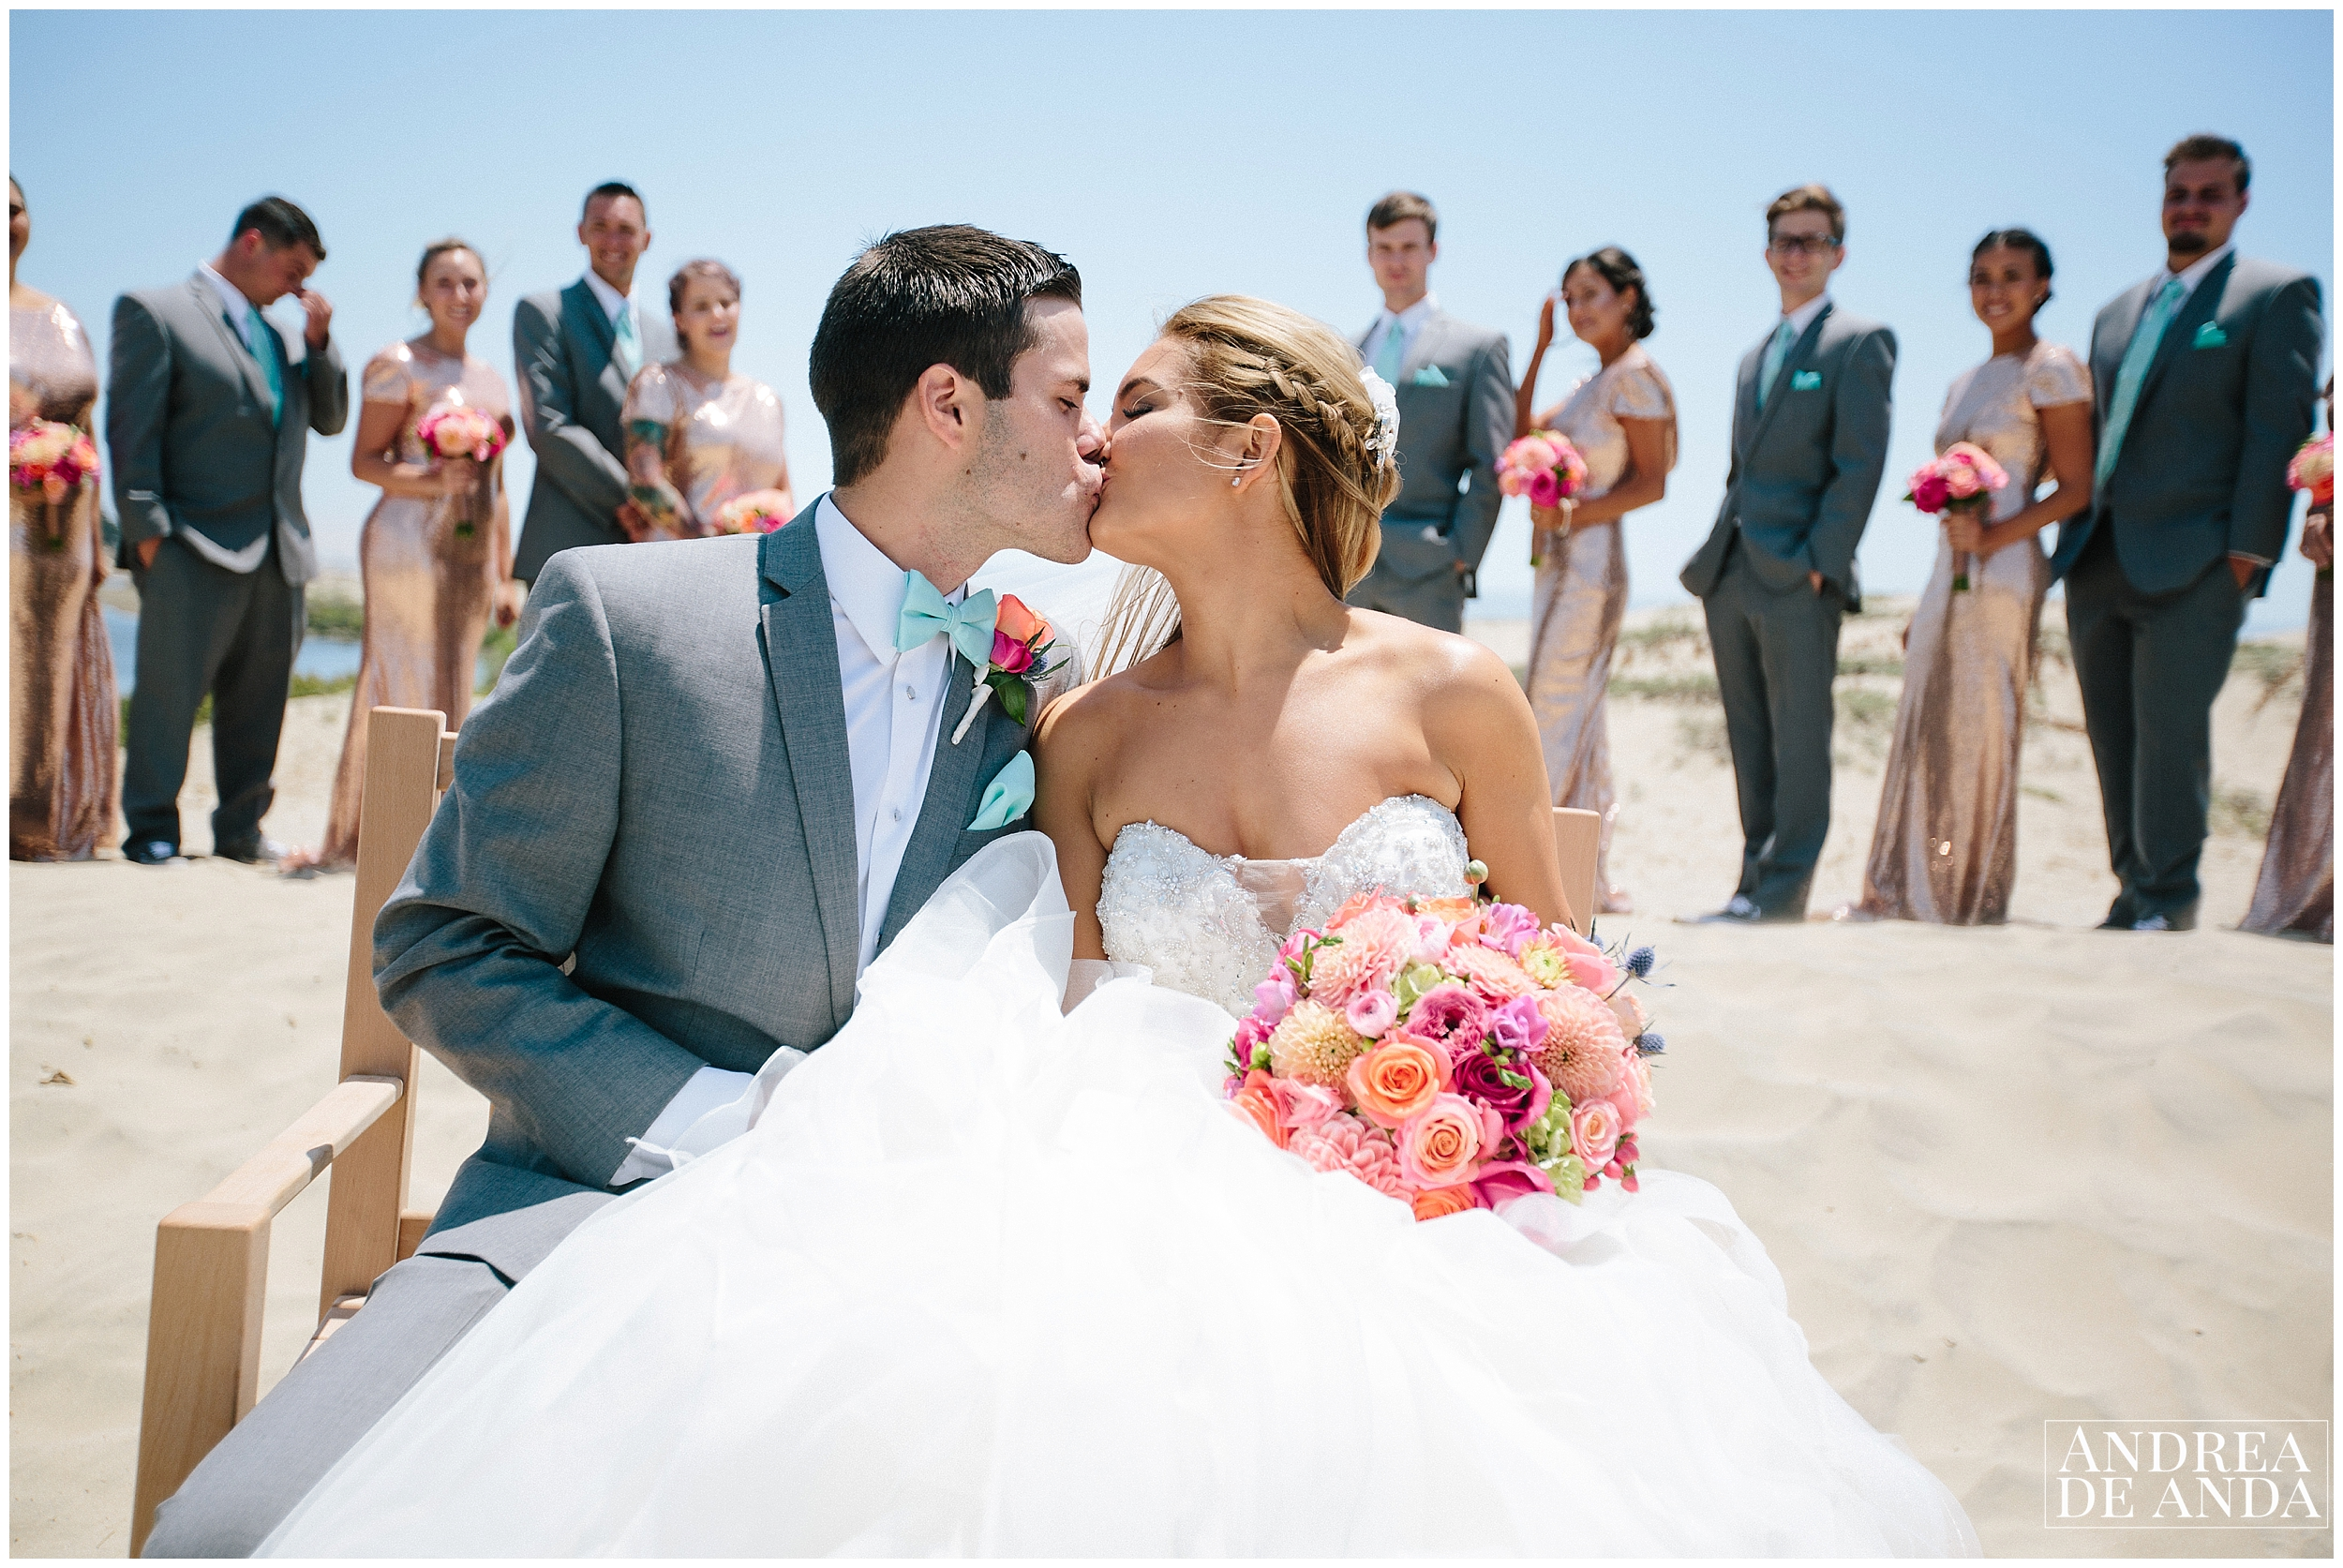 Bridal Party Portraits at Sea Venture Pismo Beach